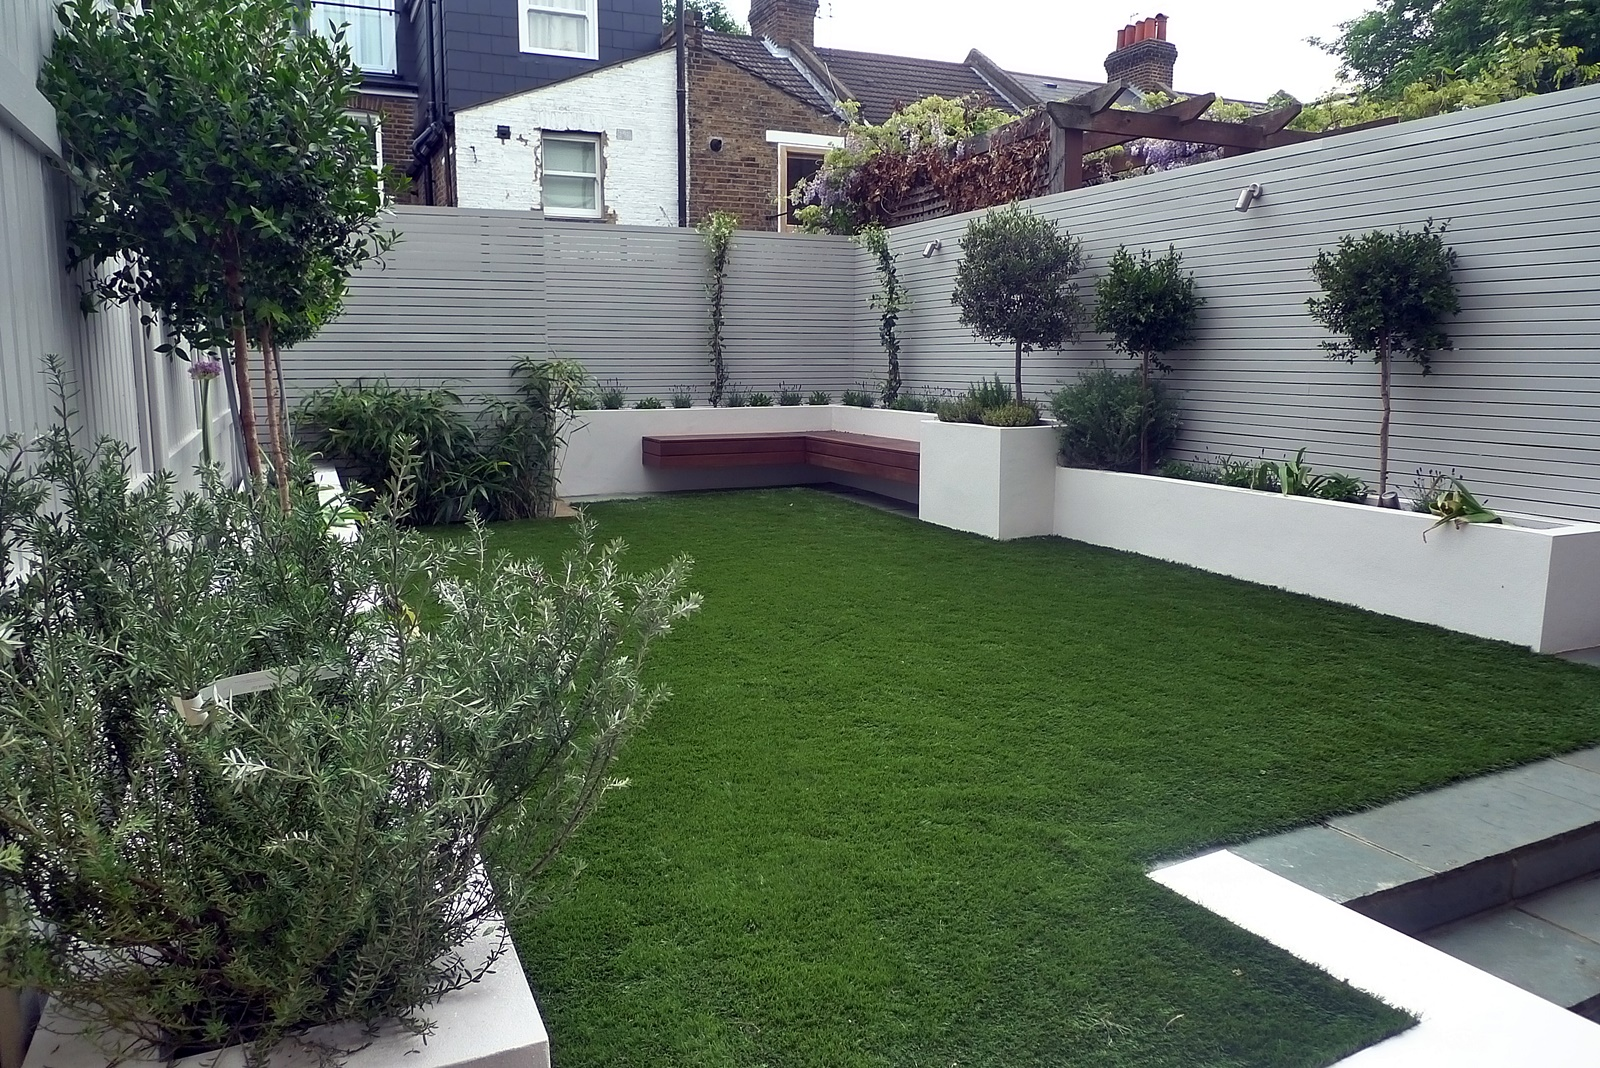 London garden blog london garden blog gardens from for Backyard design ideas